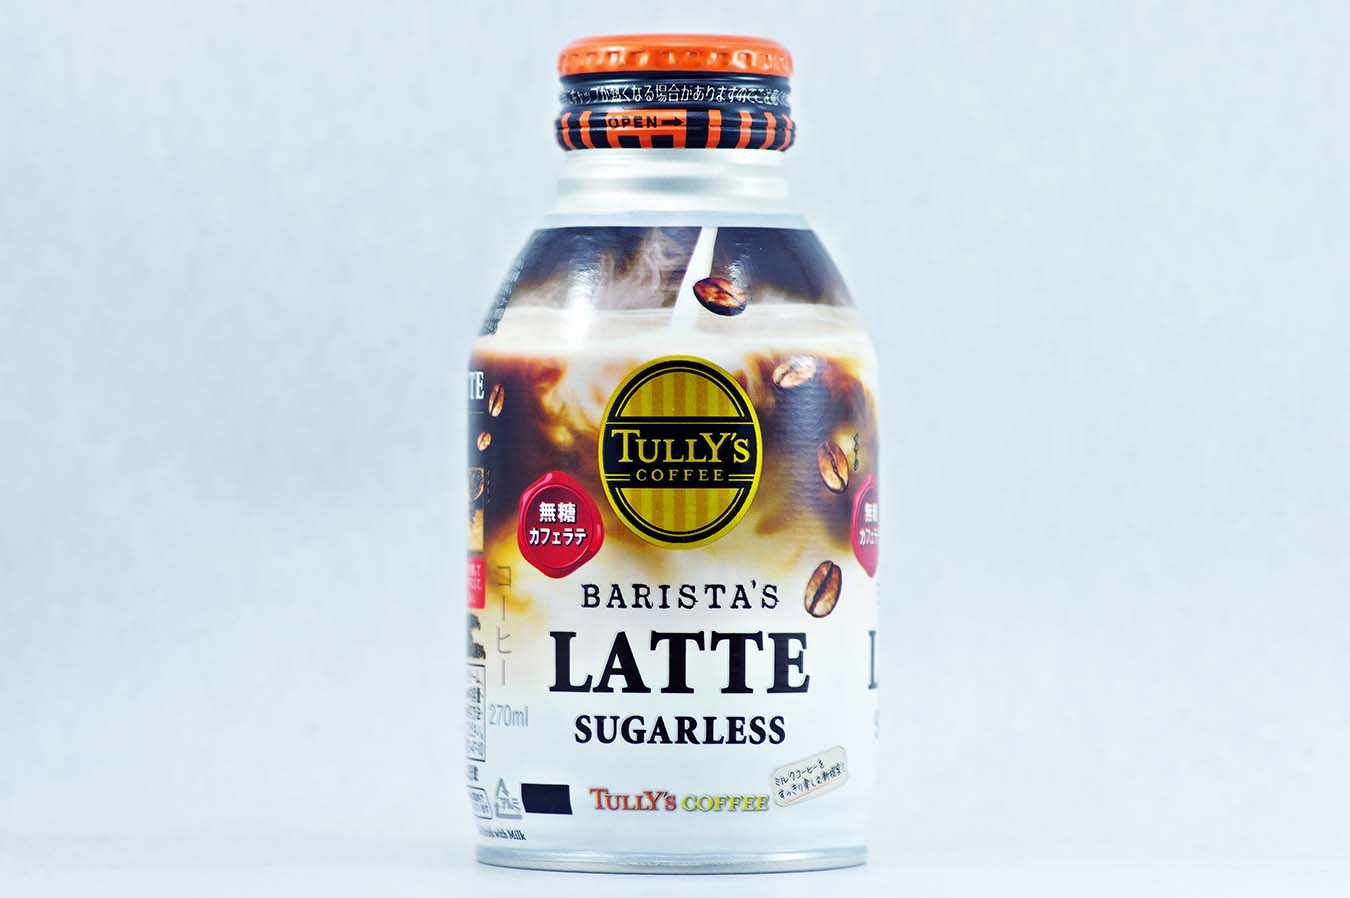 TULLY'S COFFEE BARISTA'S LATTE SUGARLESS 270mlボトル缶 2015年10月